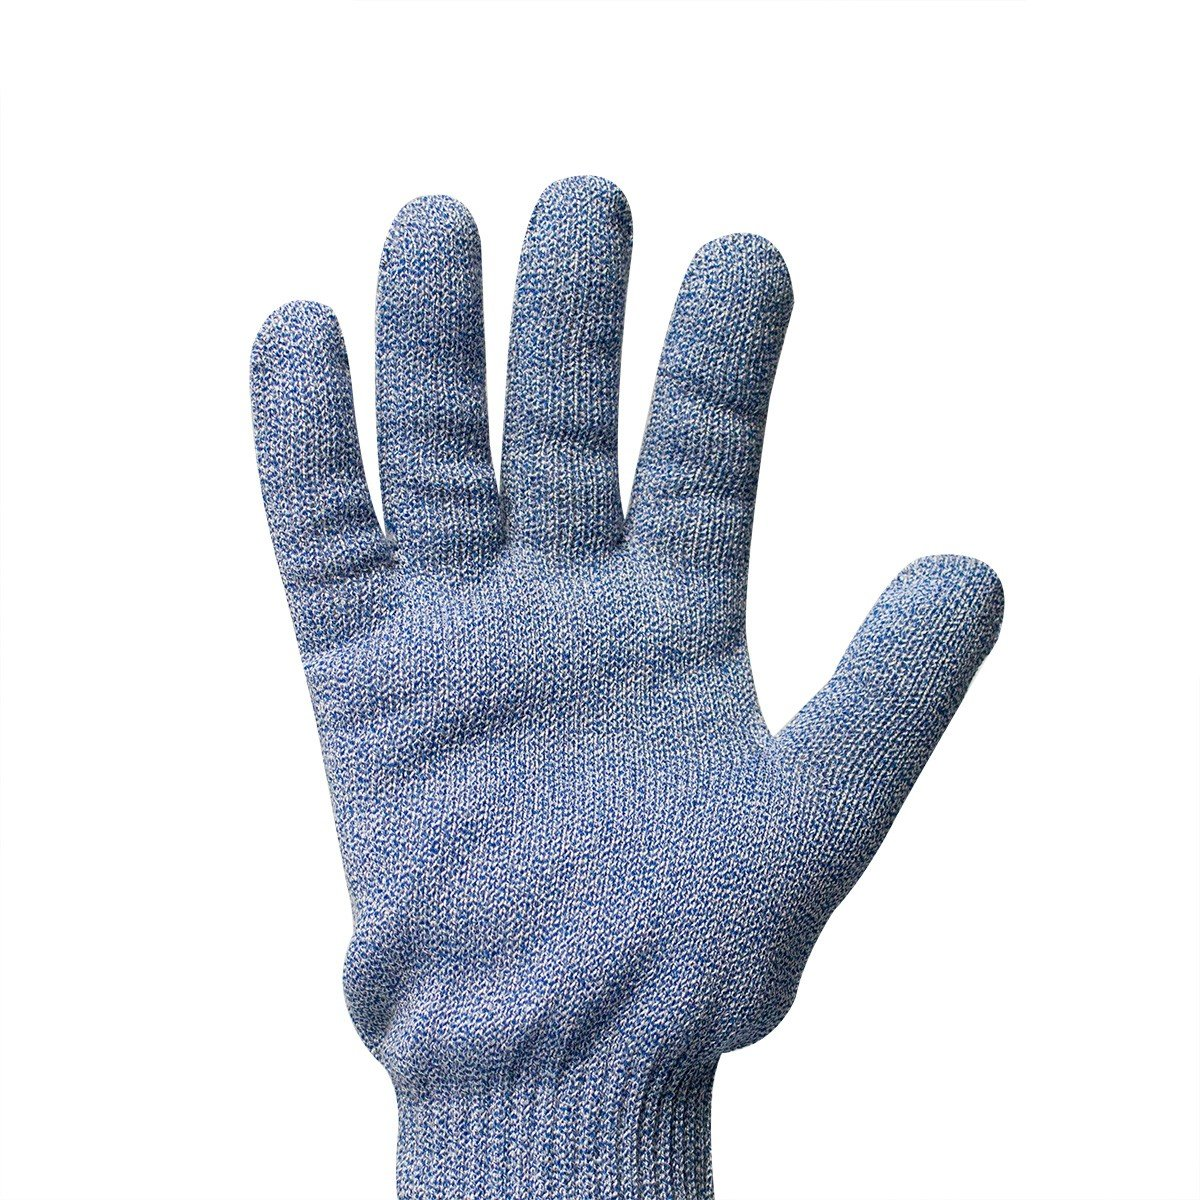 UltraSource Cut Resistant Kitchen Glove, Food Grade Level 5 Cut Protection, 10 gauge, Size X-Small (Single Glove)